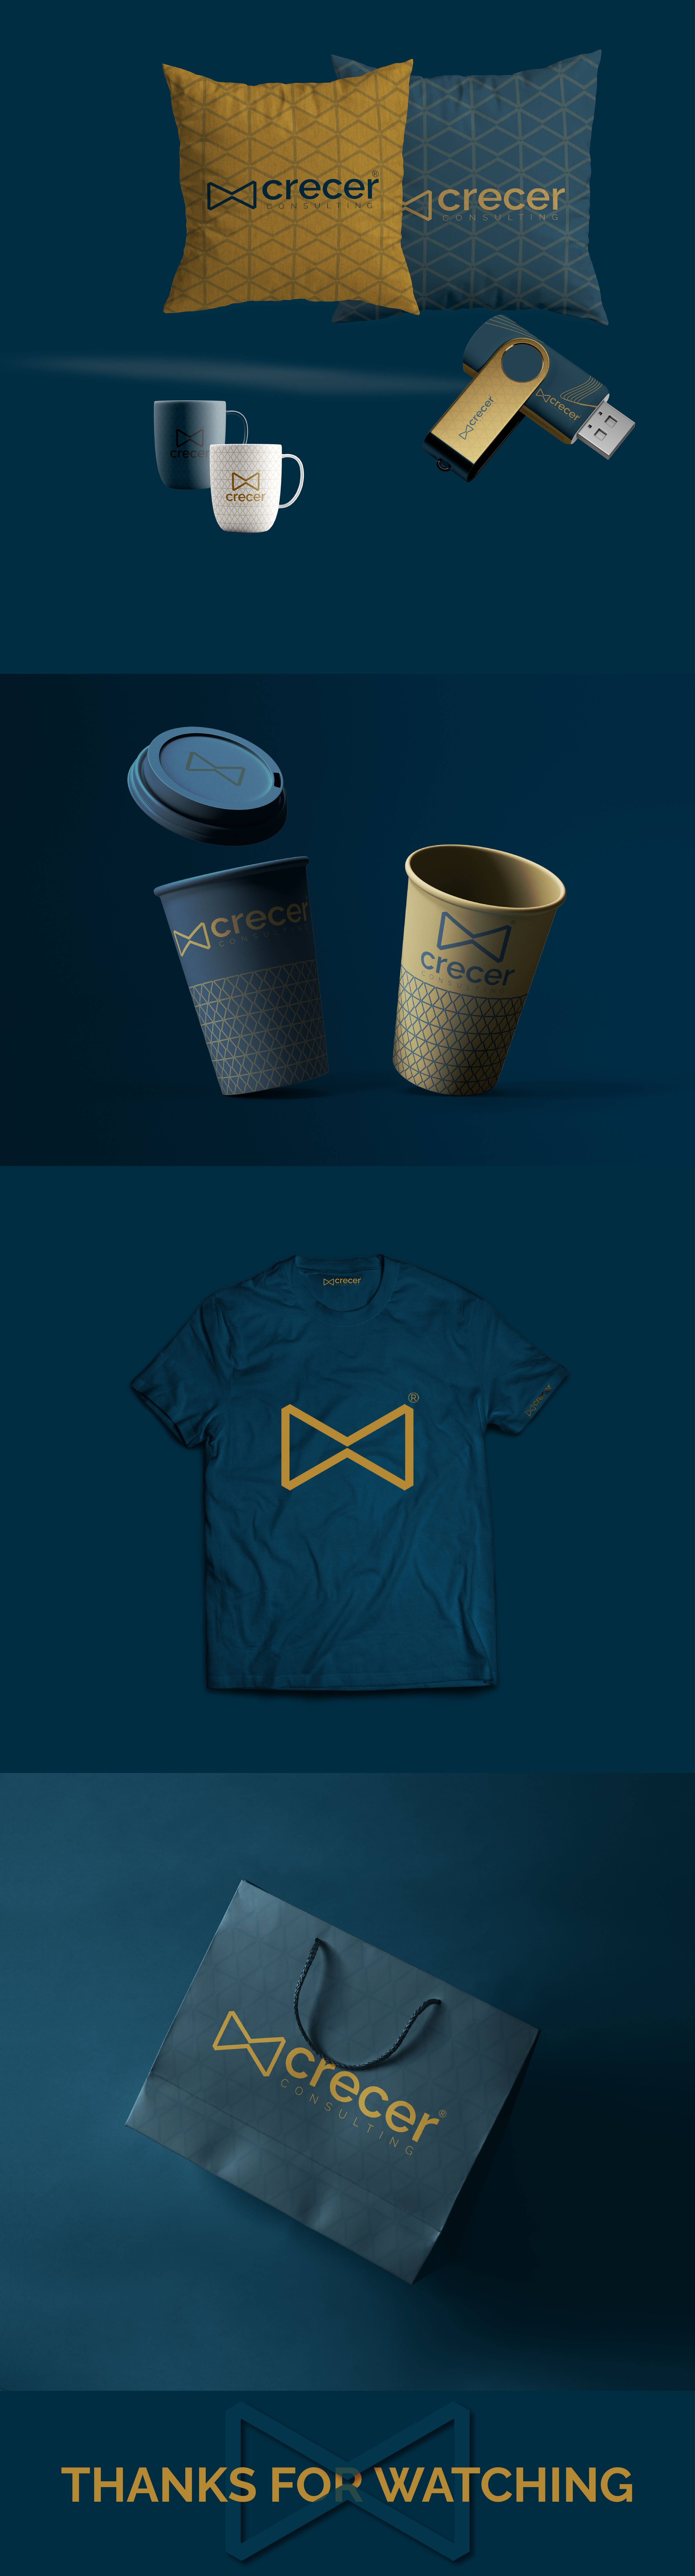 Brand Identity design for consulting services.